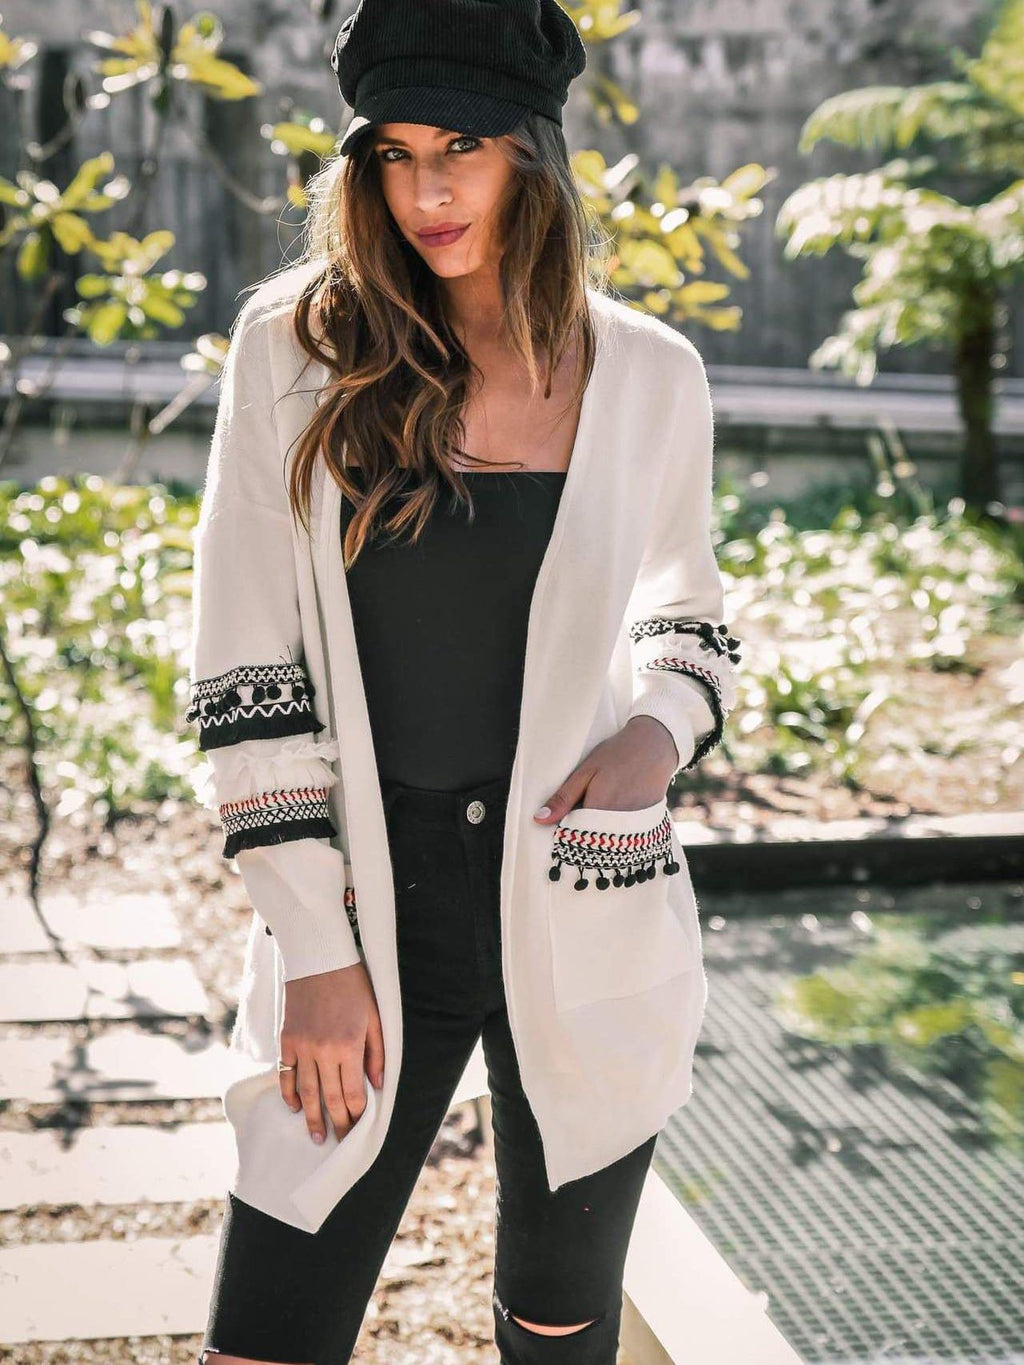 Women's Stylish Patchwork Cardigan Sweater Coat - INS | Online Fashion Free Shipping Clothing, Dresses, Tops, Shoes